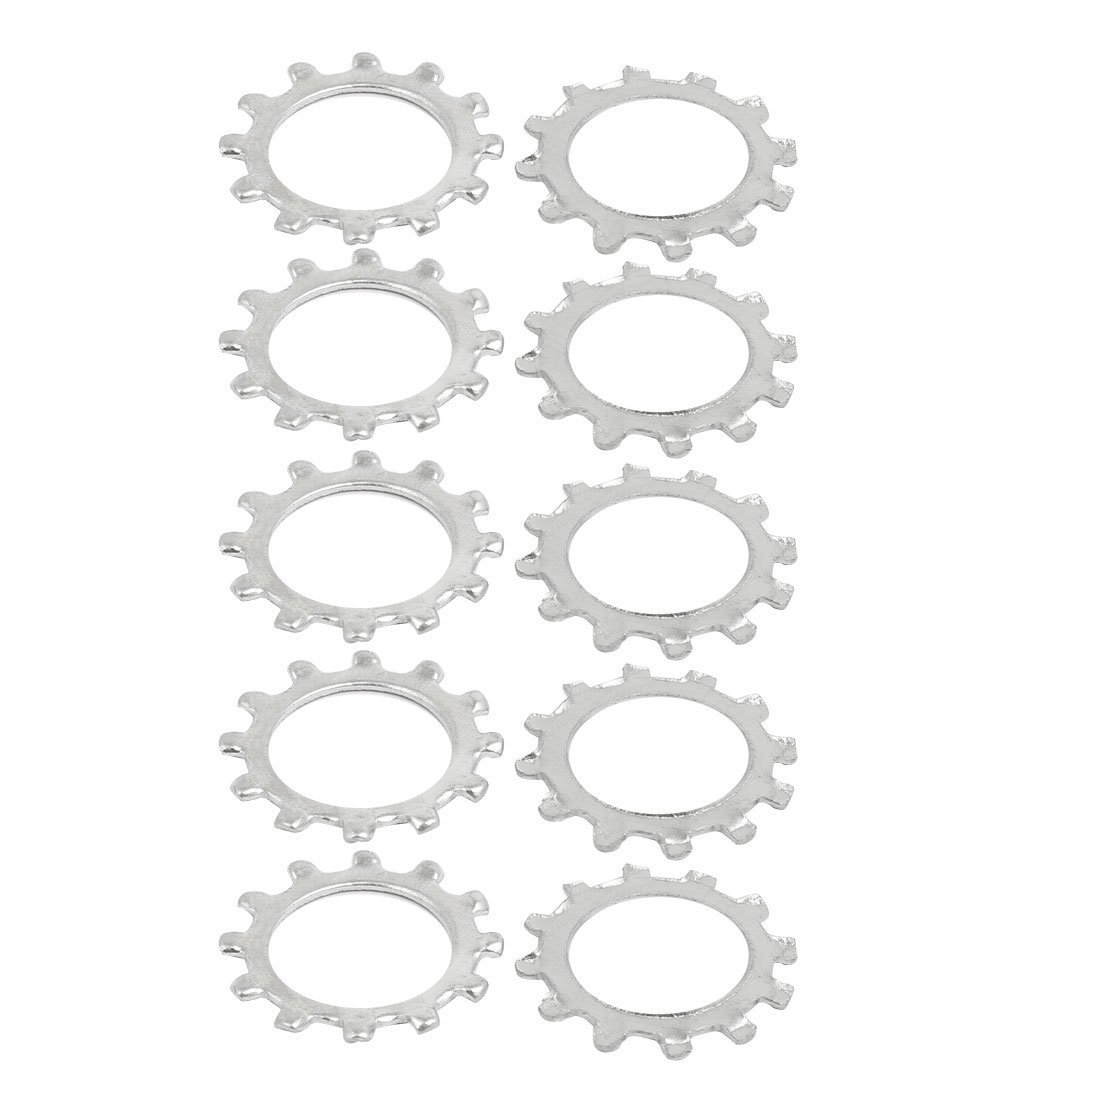 uxcell 6mm Inner Dia Stainless Steel External Tooth Lock Washer Silver Tone 30pcs